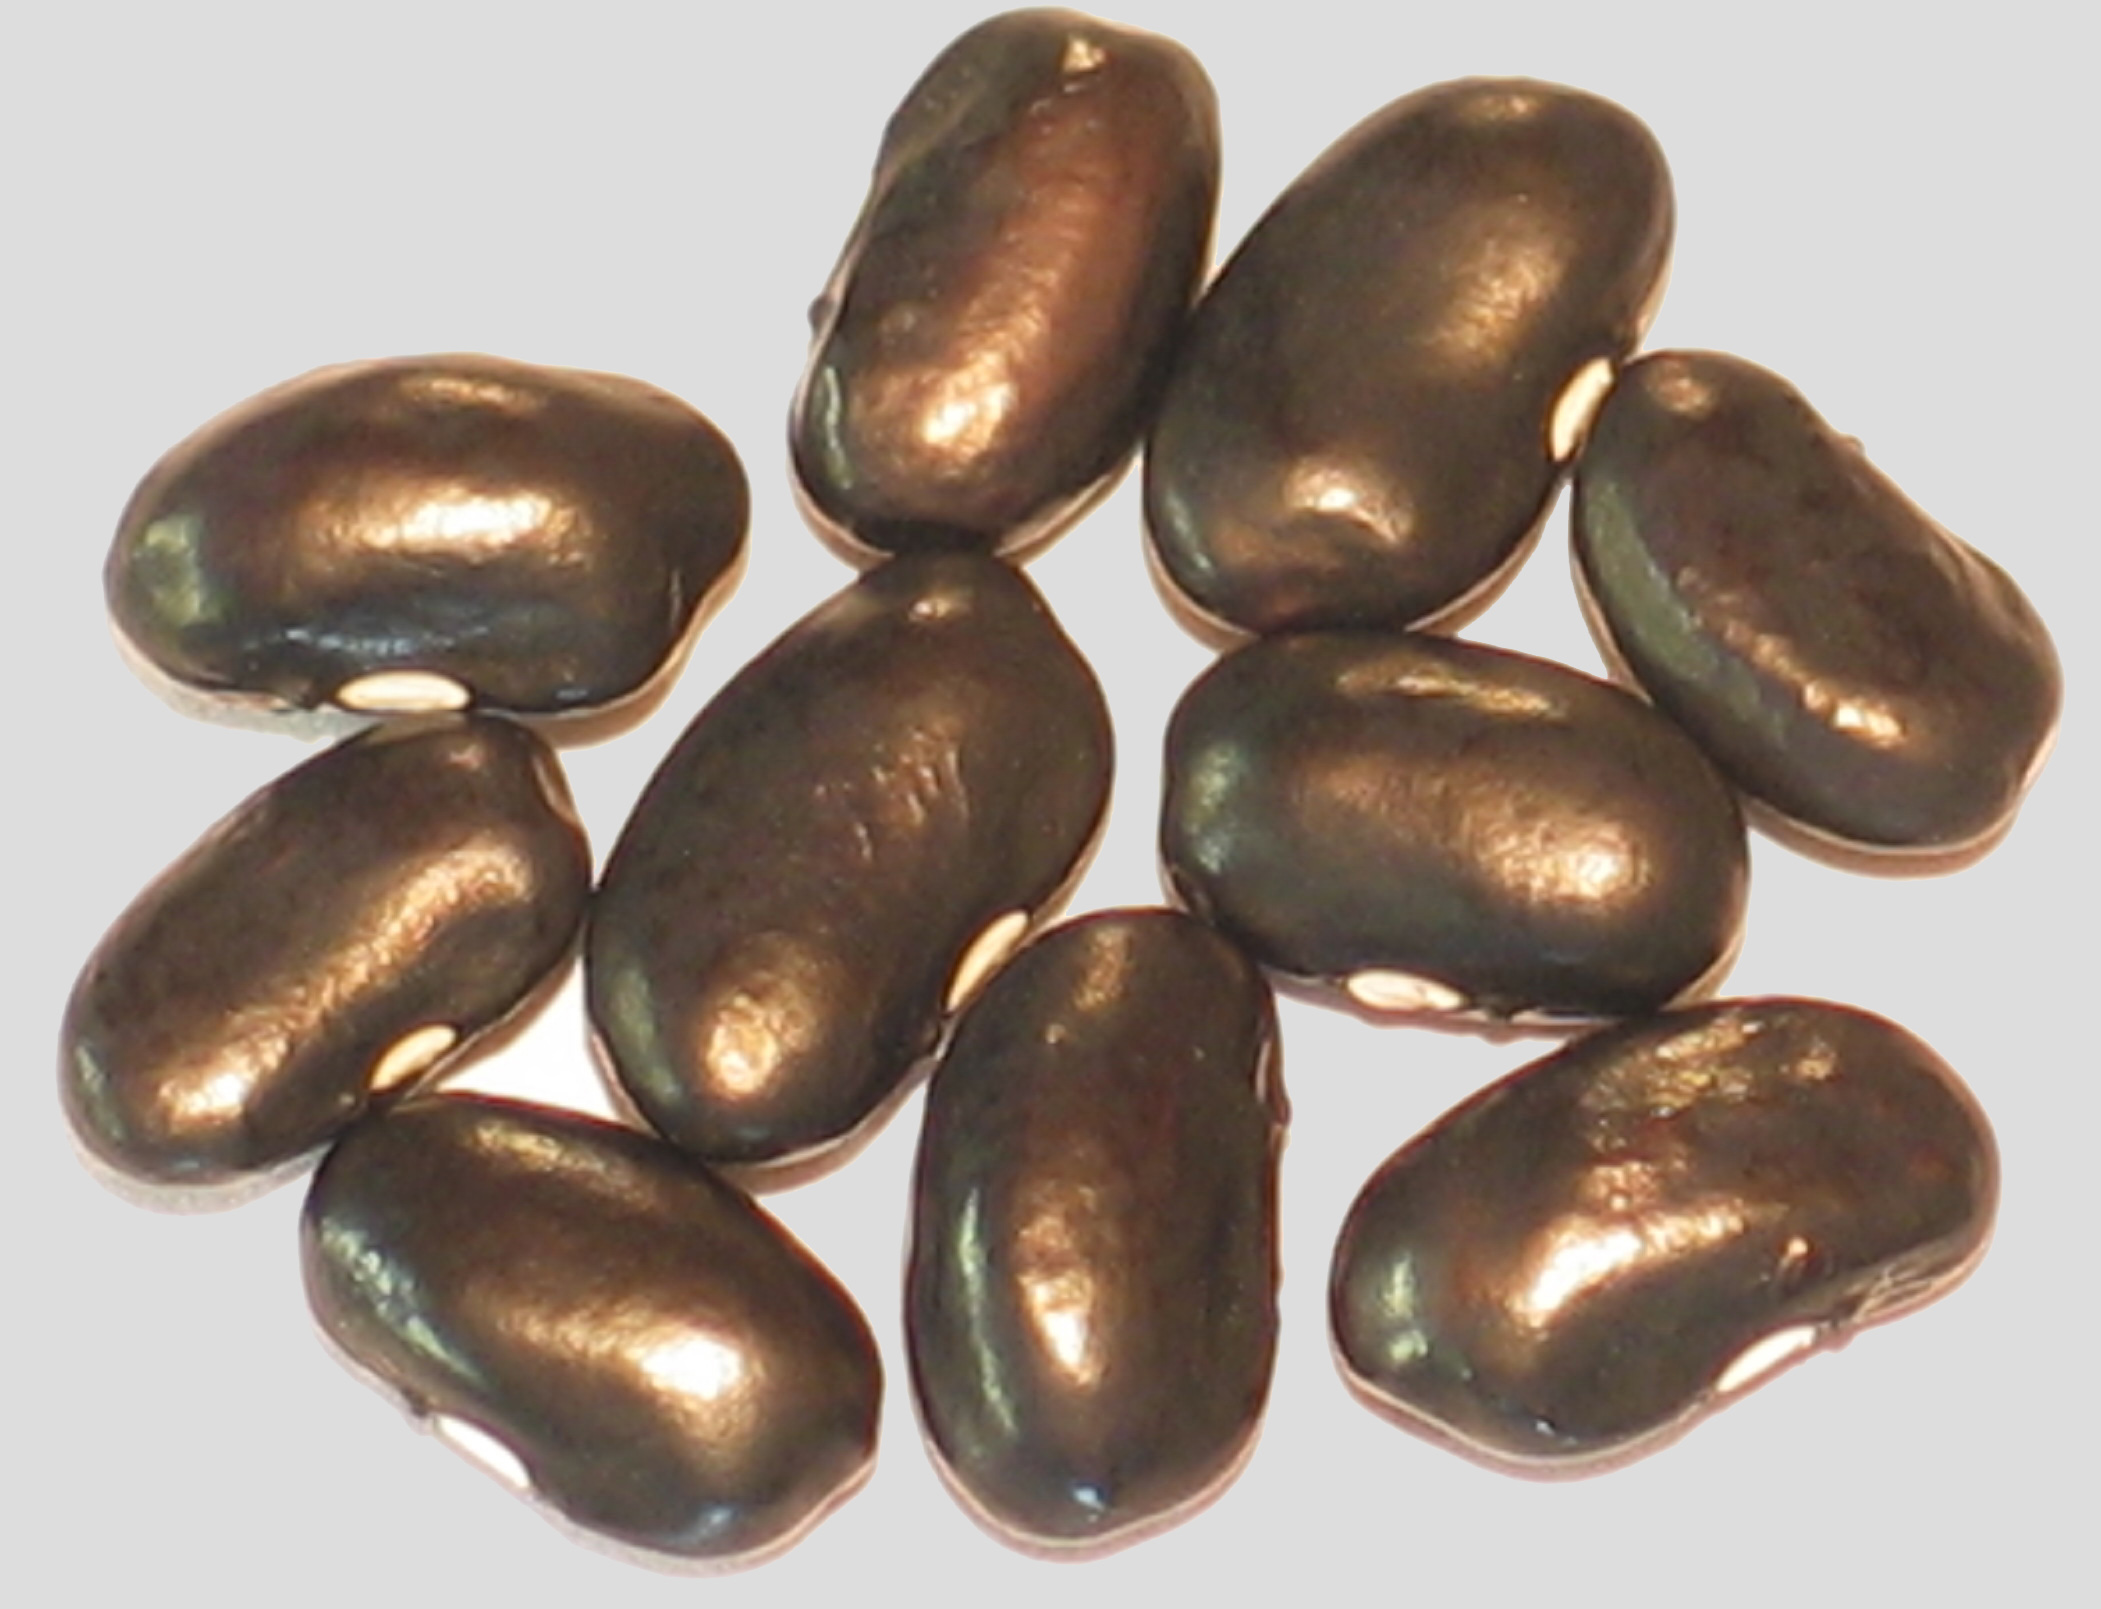 image of Black Super Nova beans